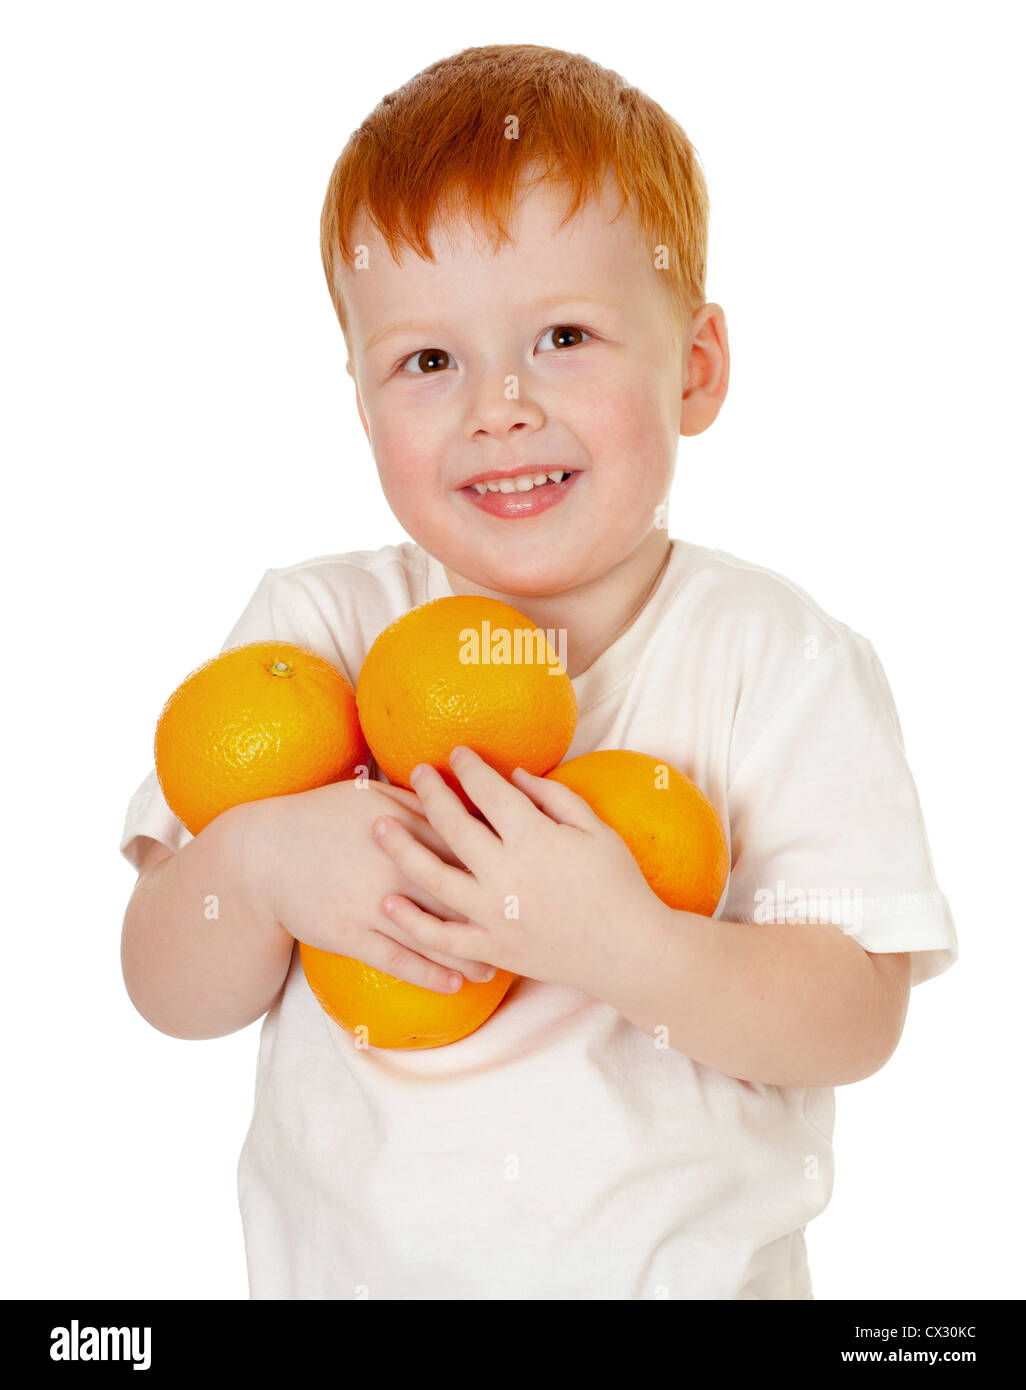 redheaded boy with oranges isolated on white - Stock Image